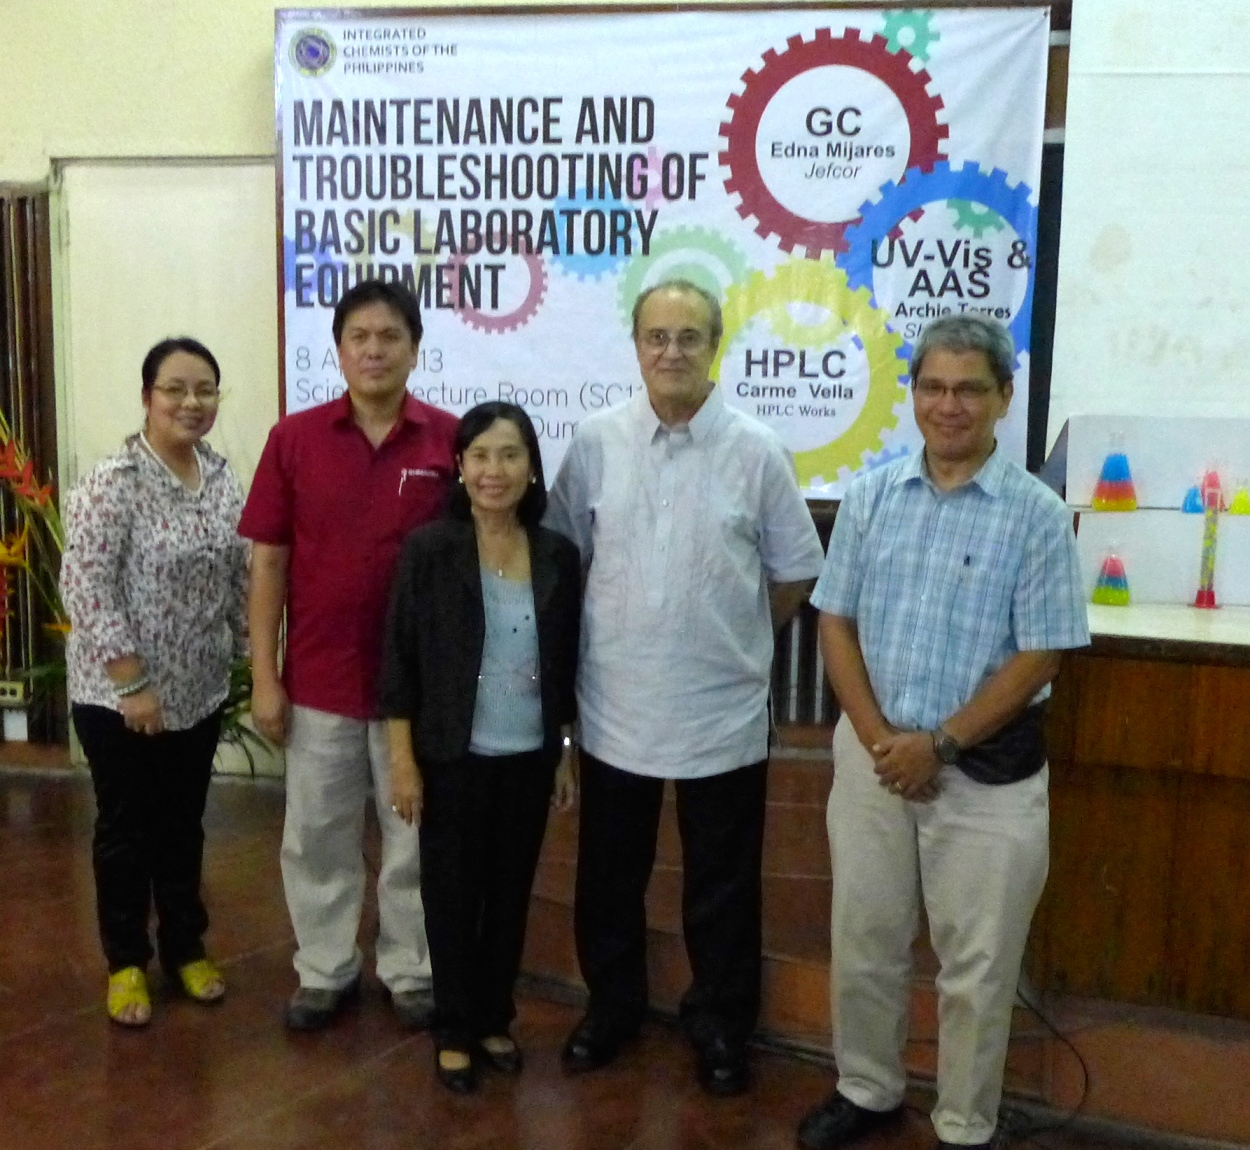 ICP Conducts Maintenance and Troubleshooting of Basic Laboratory